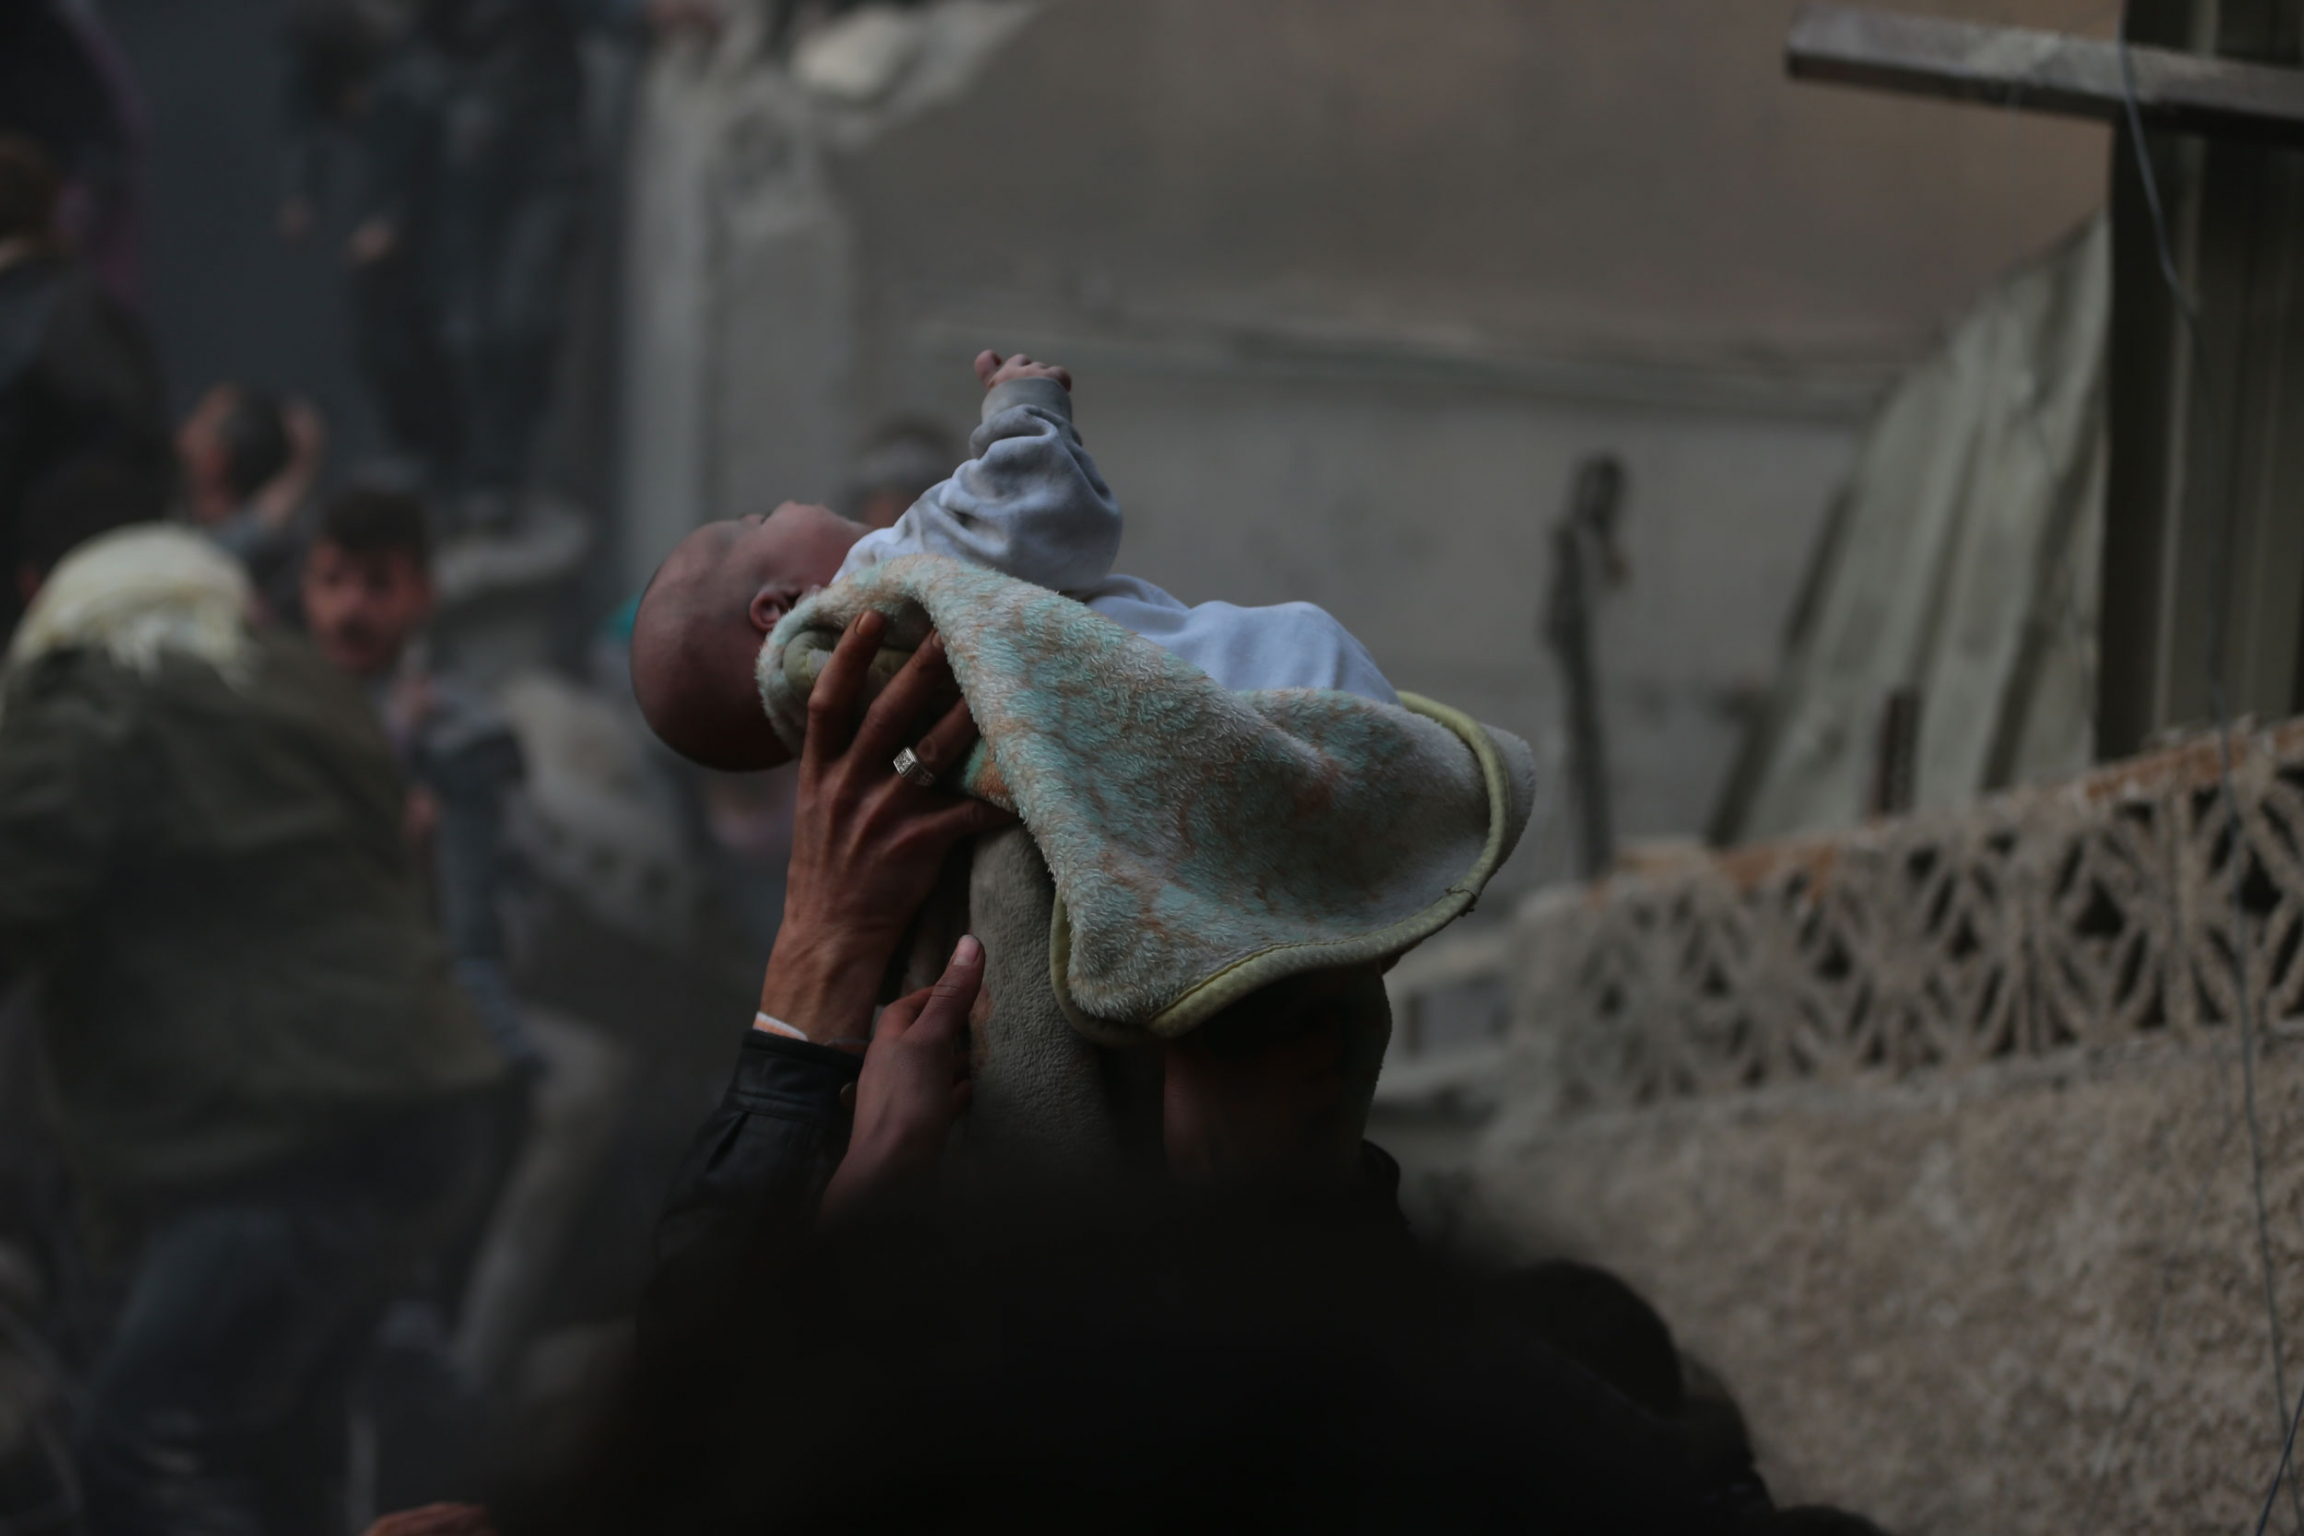 A small baby is shown wrapped in blanked and held above the heads people amid blackened walls of buildings.